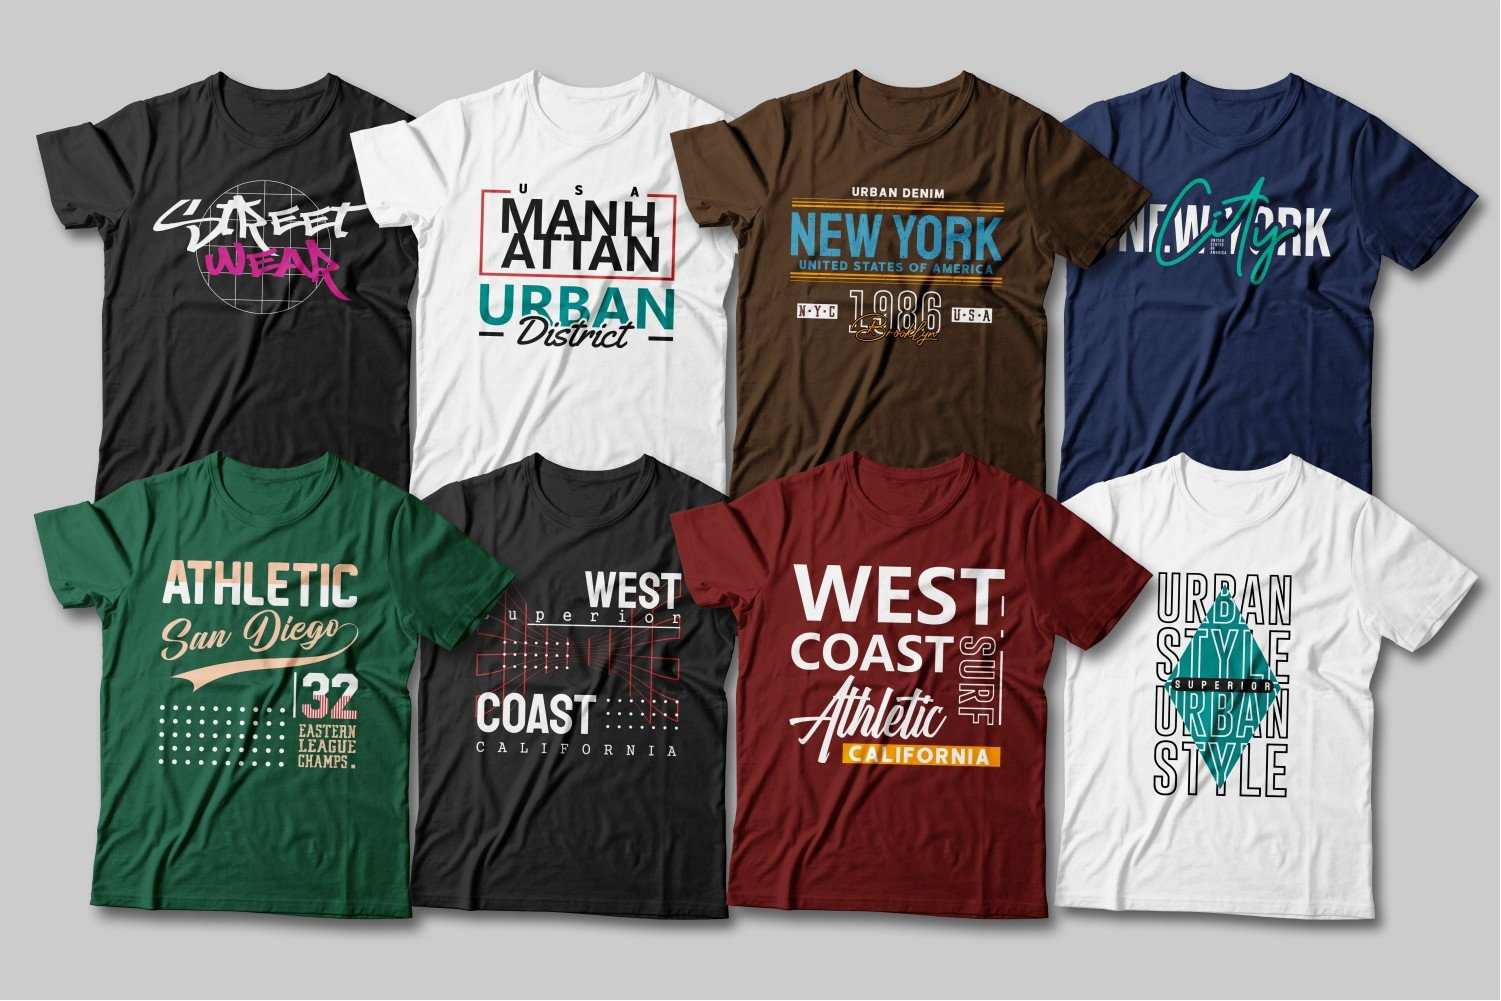 White, blue, brown, burgundy and black T-shirts with different fonts.